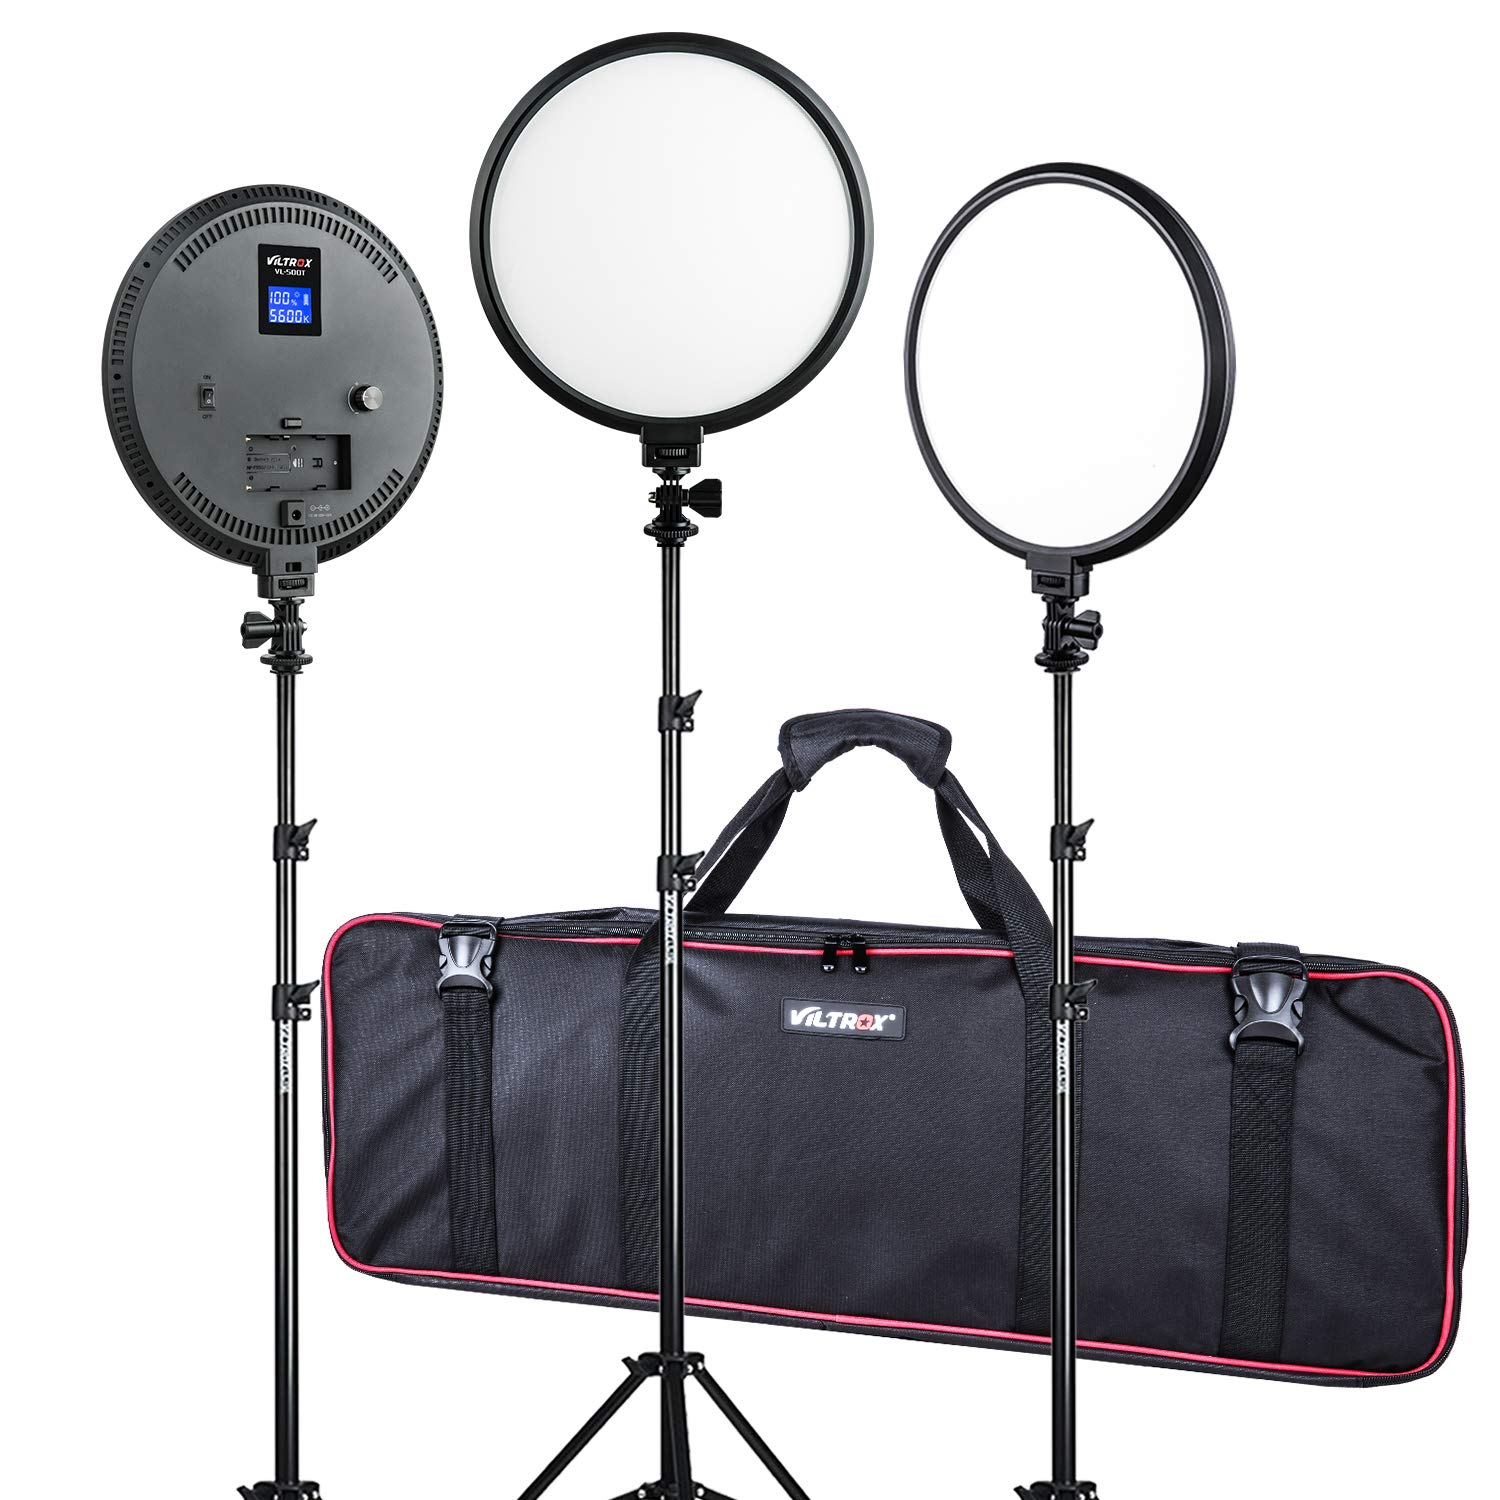 (3 Pack) VILTROX FlapJack Studio Light kit, 10-Inch Bi-Color 2000LM LED Studio Round Light with Stand, for Child Photography,Portrait and Video Shoot Studio Photography